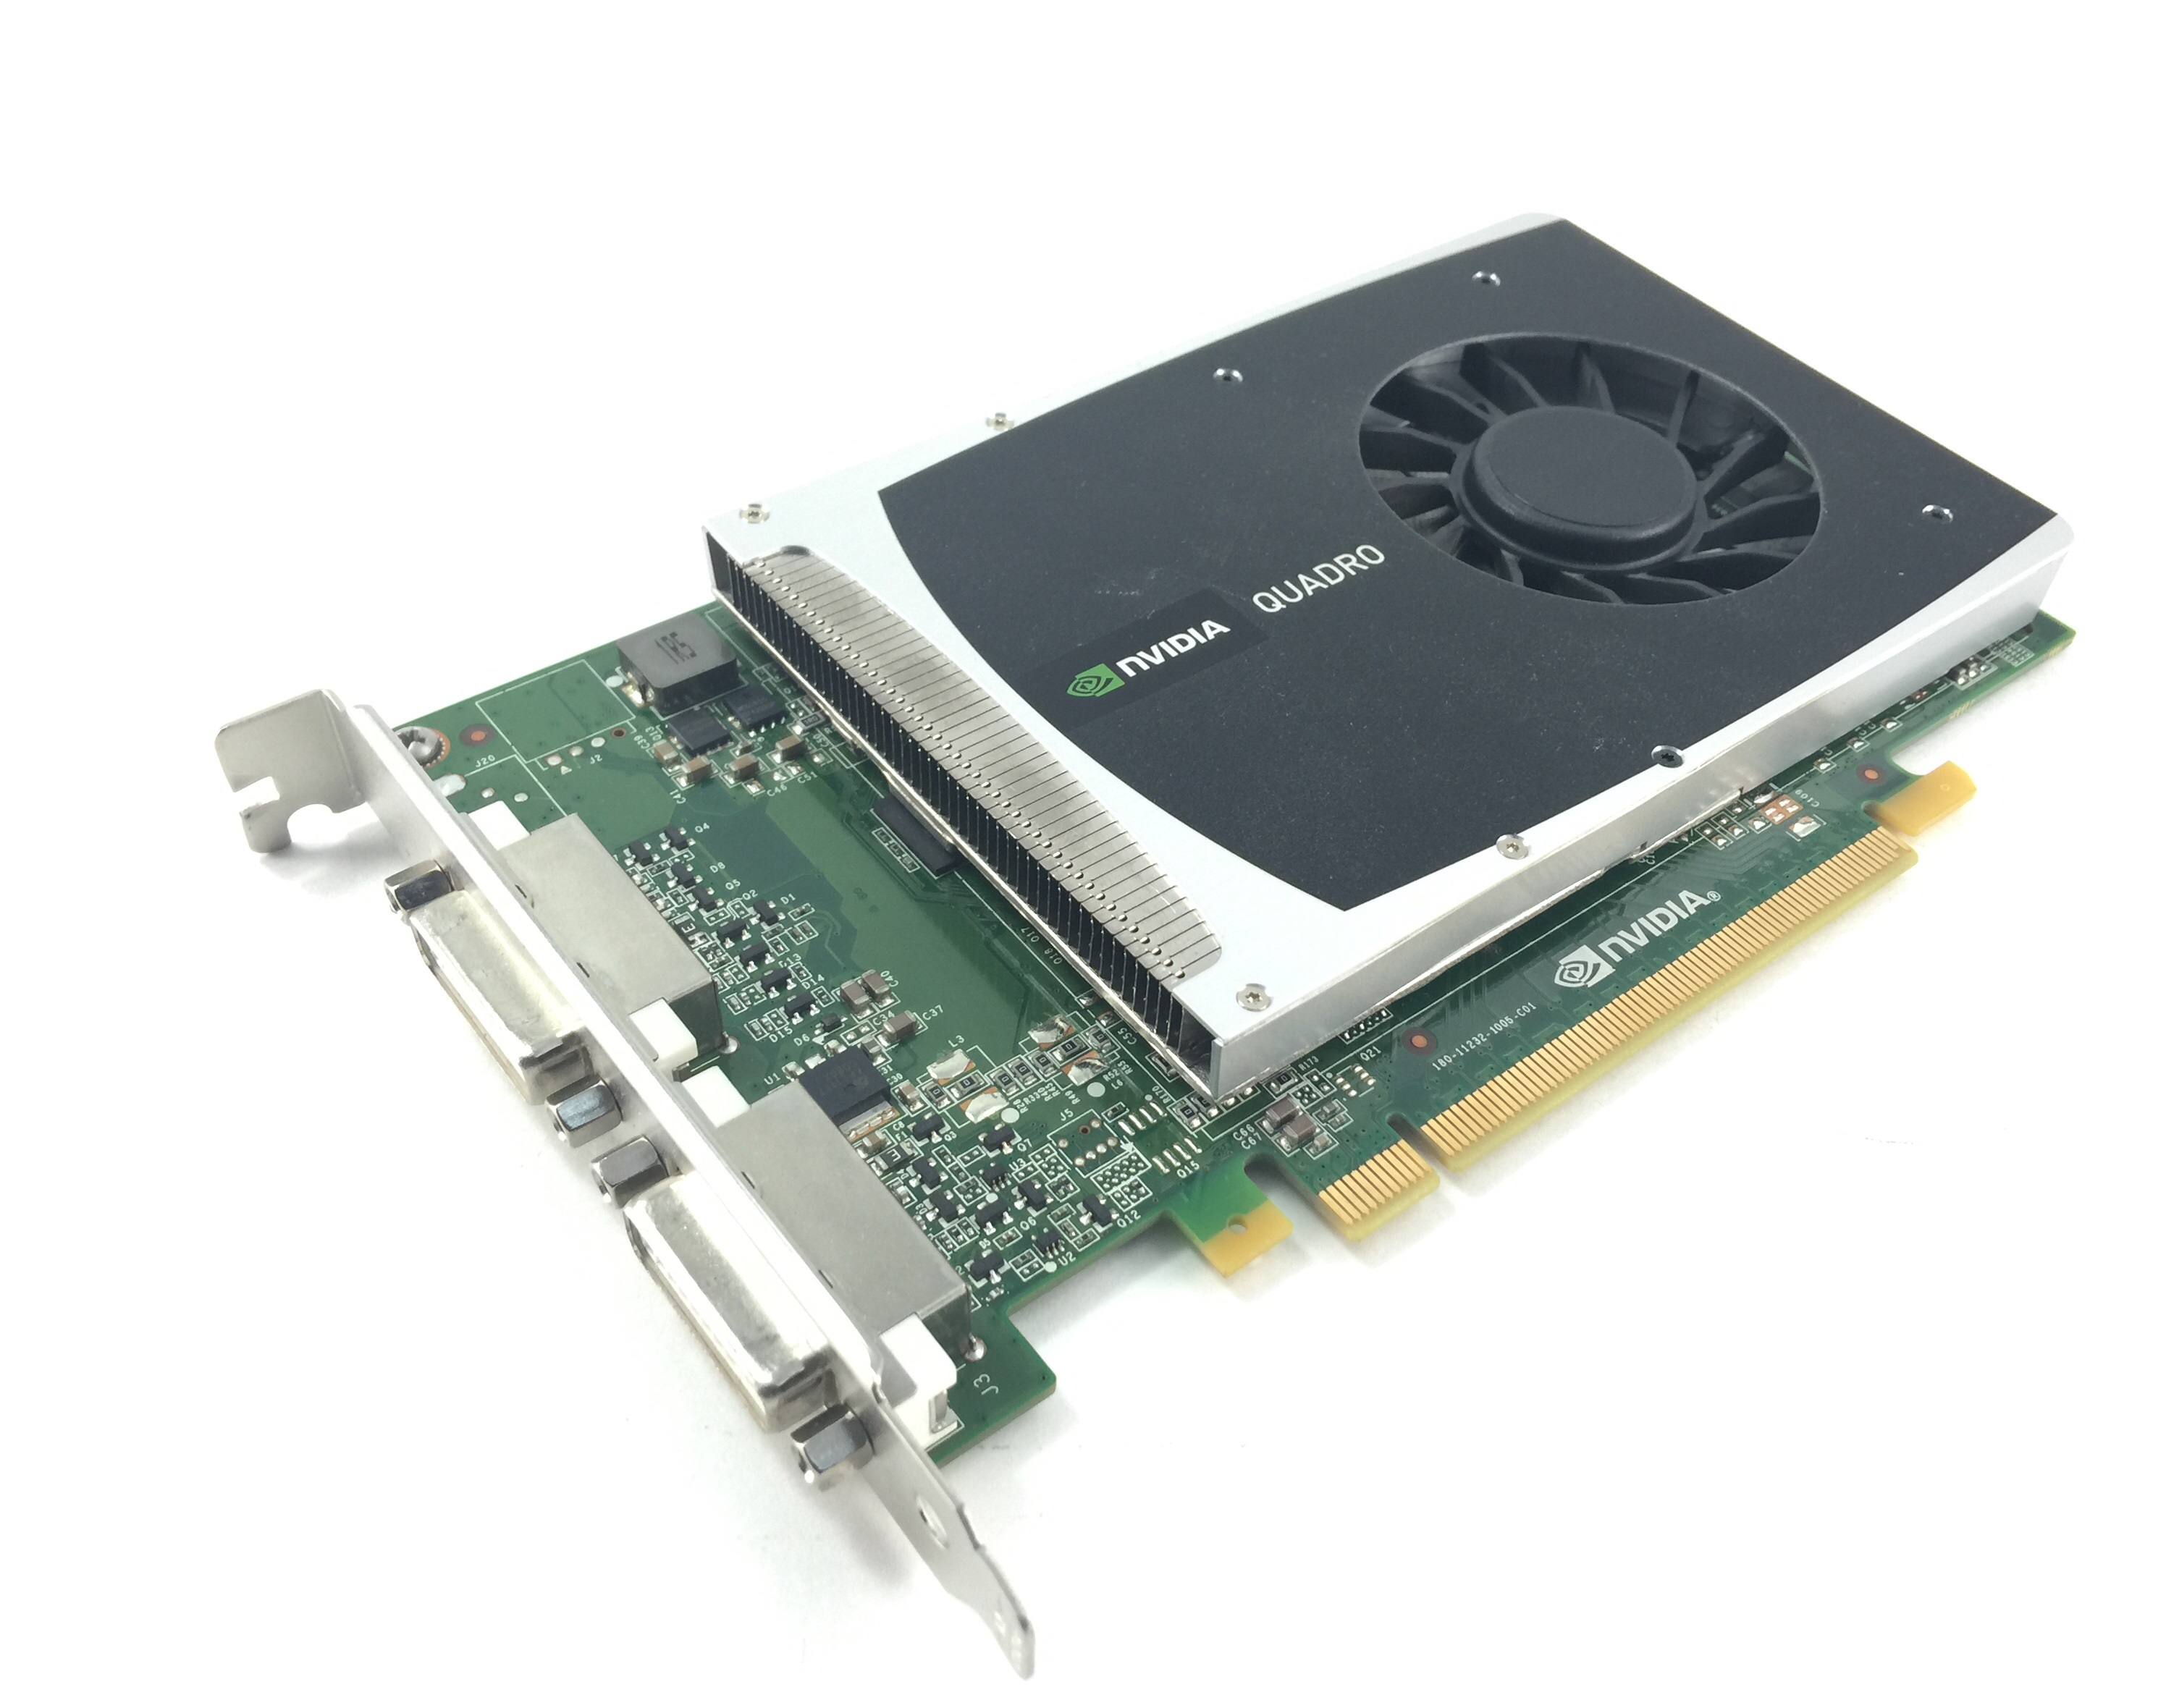 IBM NVIDIA QUADRO 2000 1GB GDDR5 PCI-E VIDEO CARD (89Y8856)